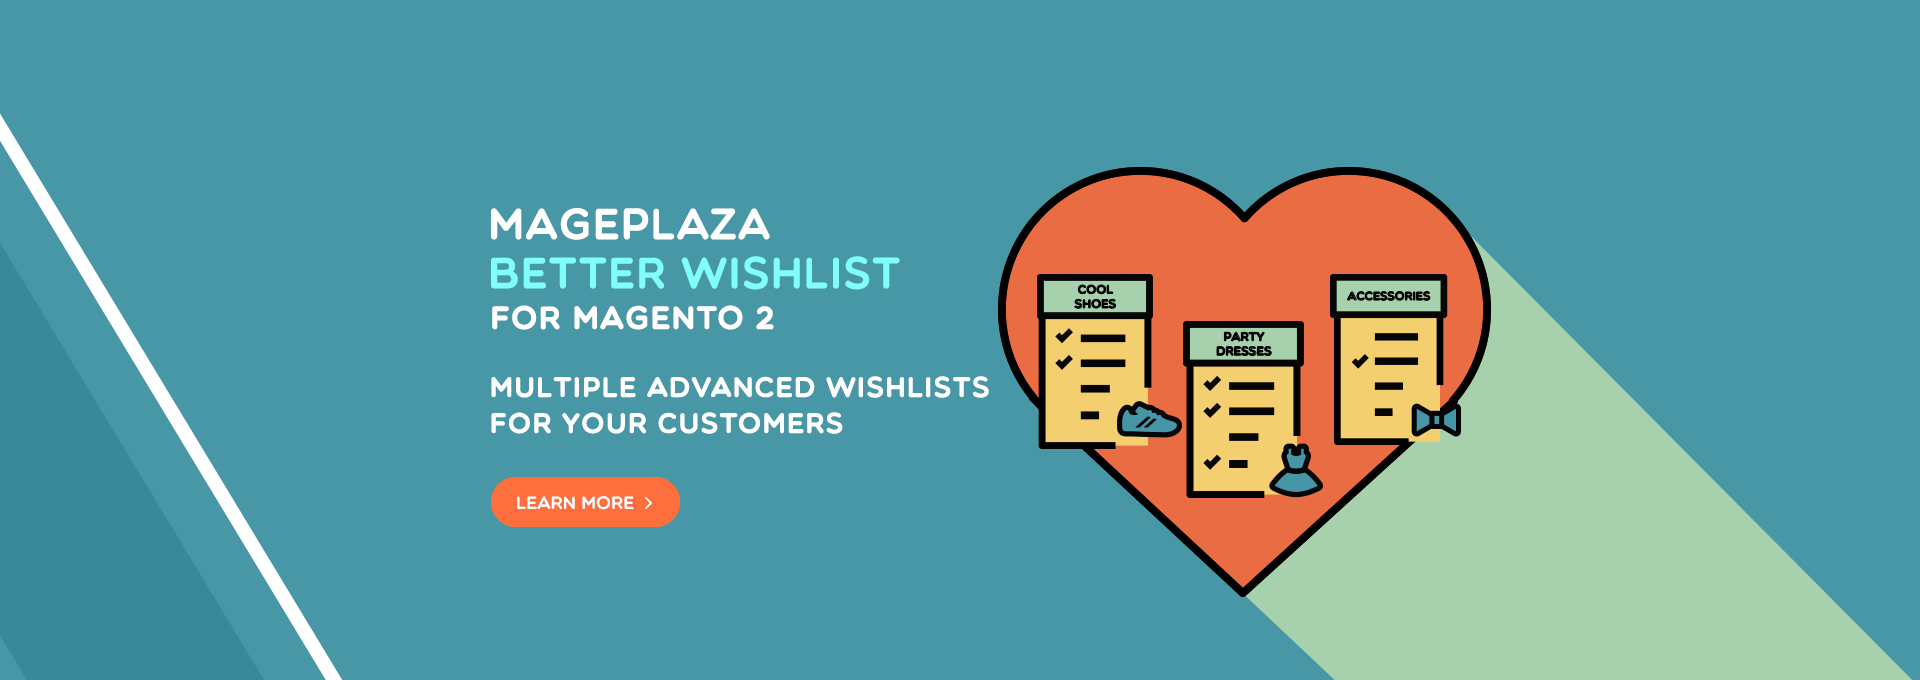 Better Wishlist - Greater Customer Experience in Magento 2 Stores